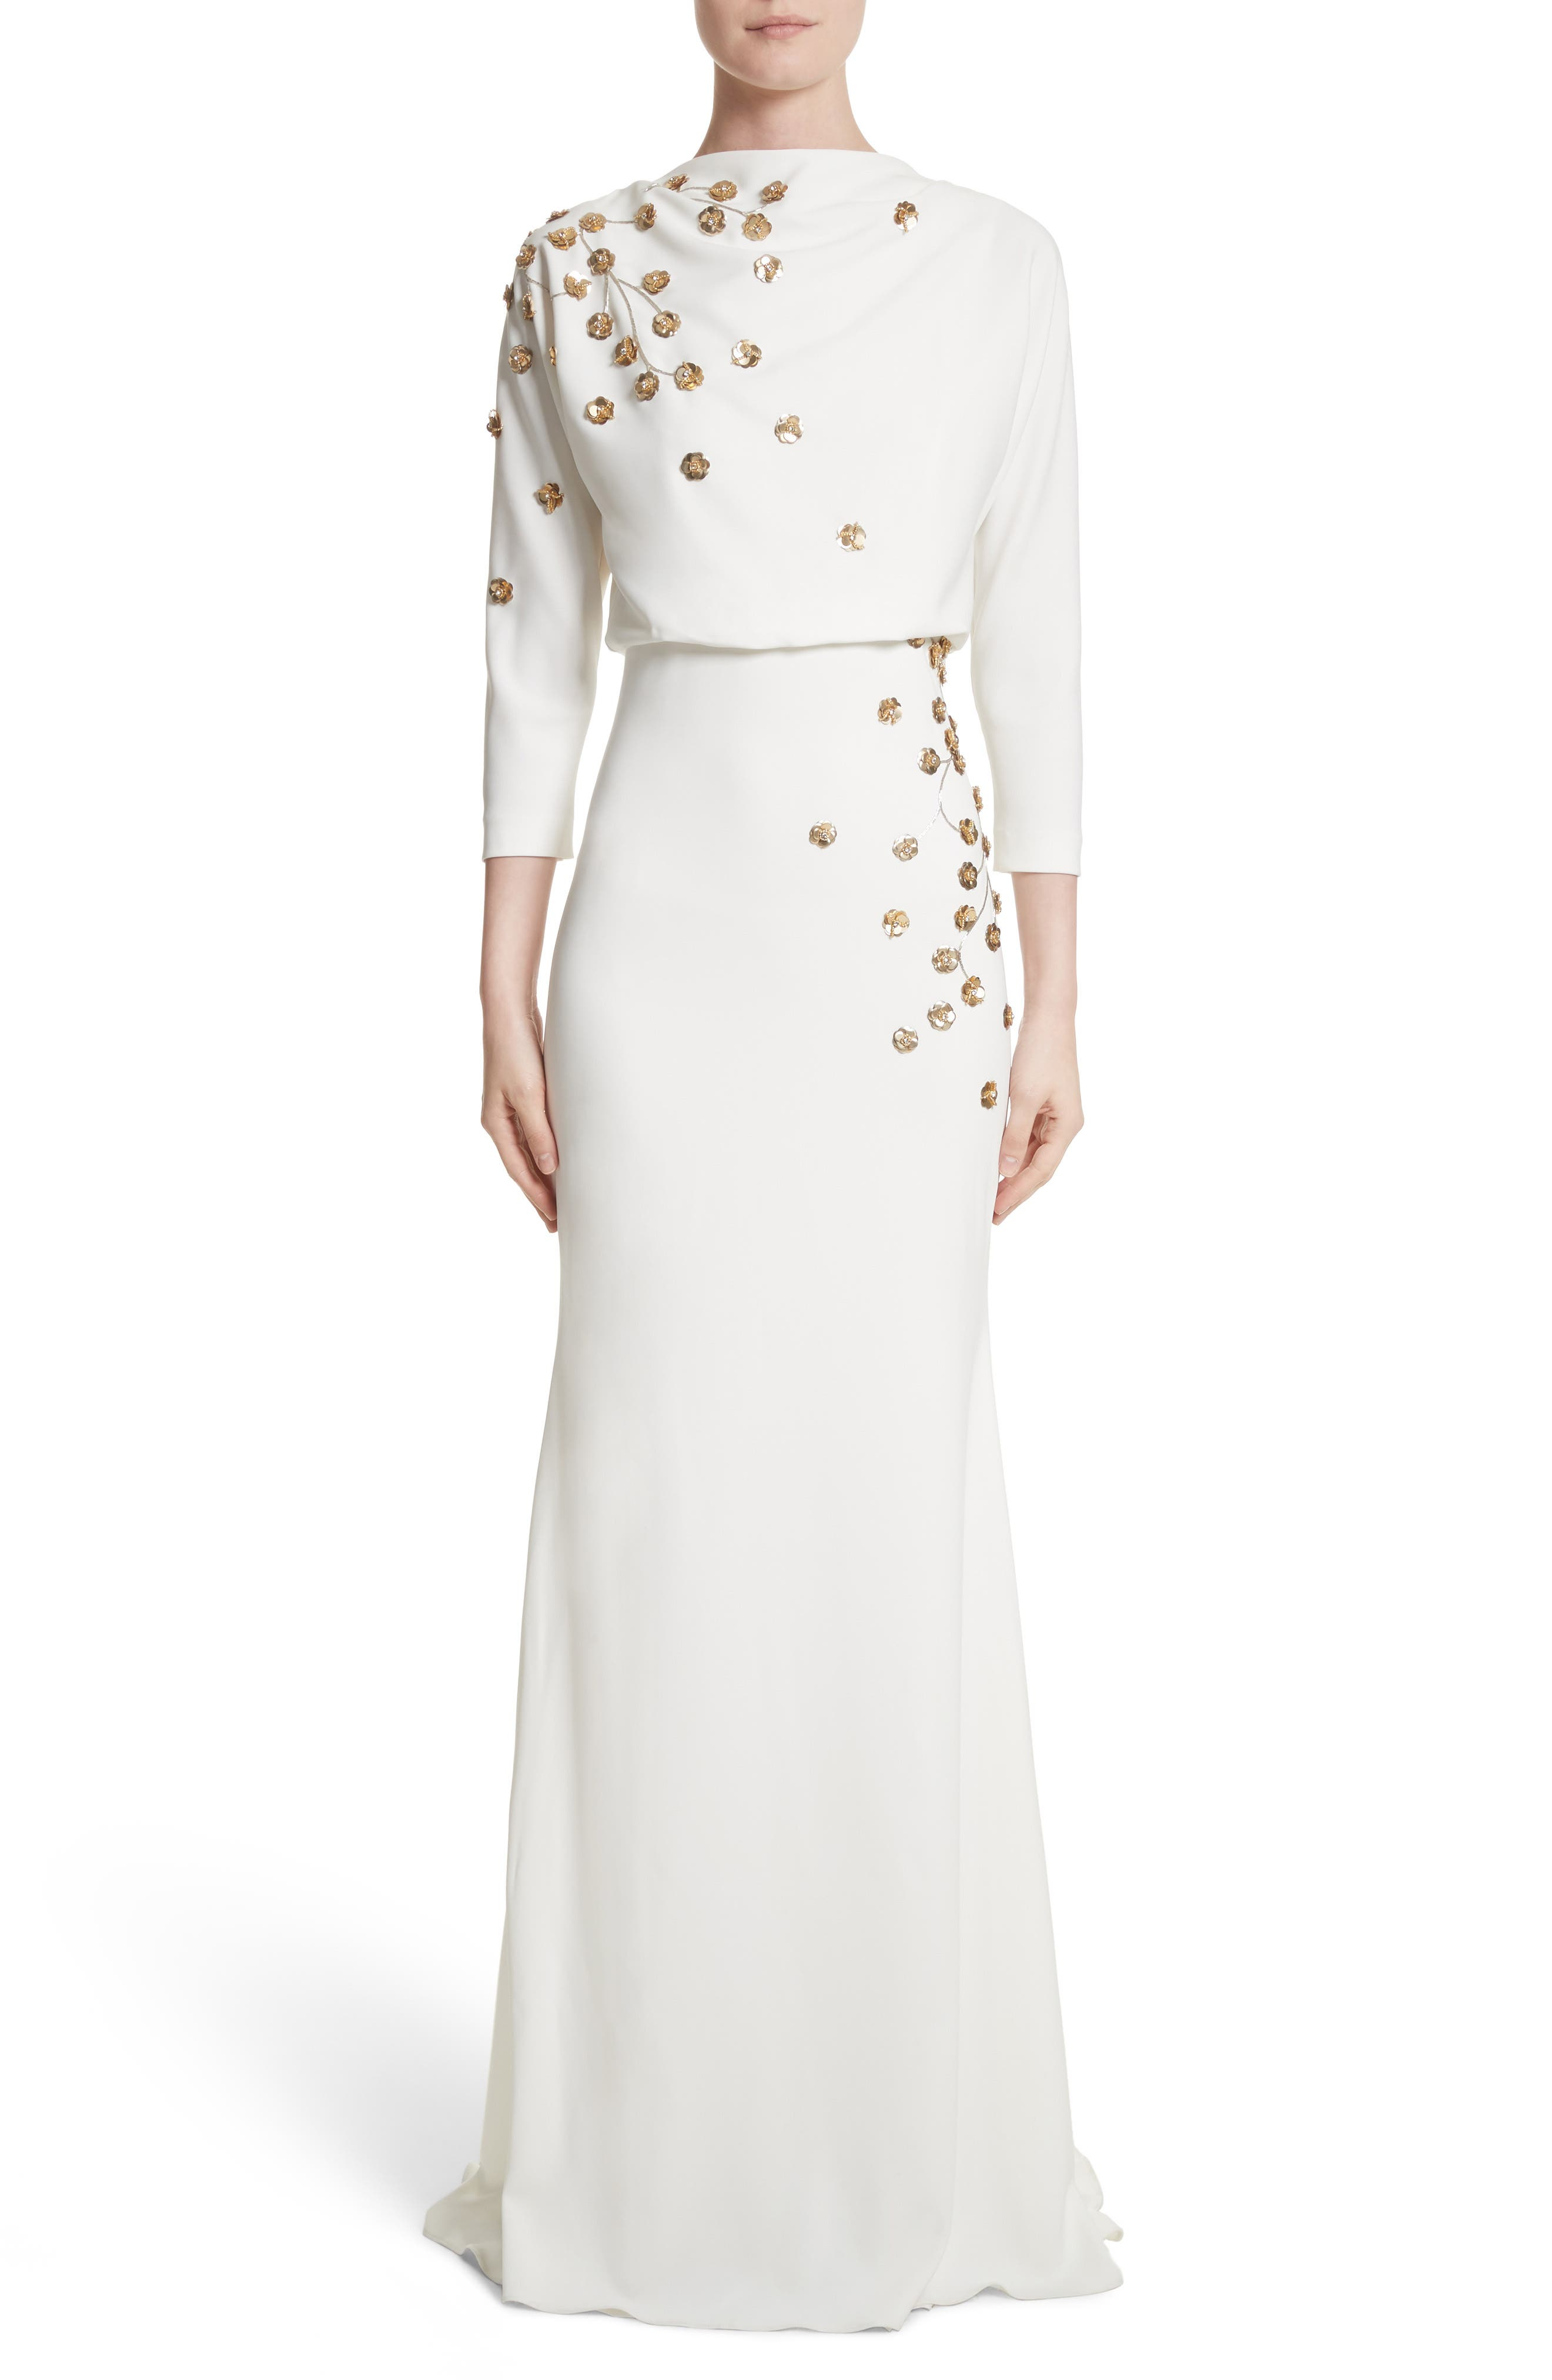 Badgley Mischka Couture Floral Embellished Crepe Gown,                         Main,                         color, Light Ivory